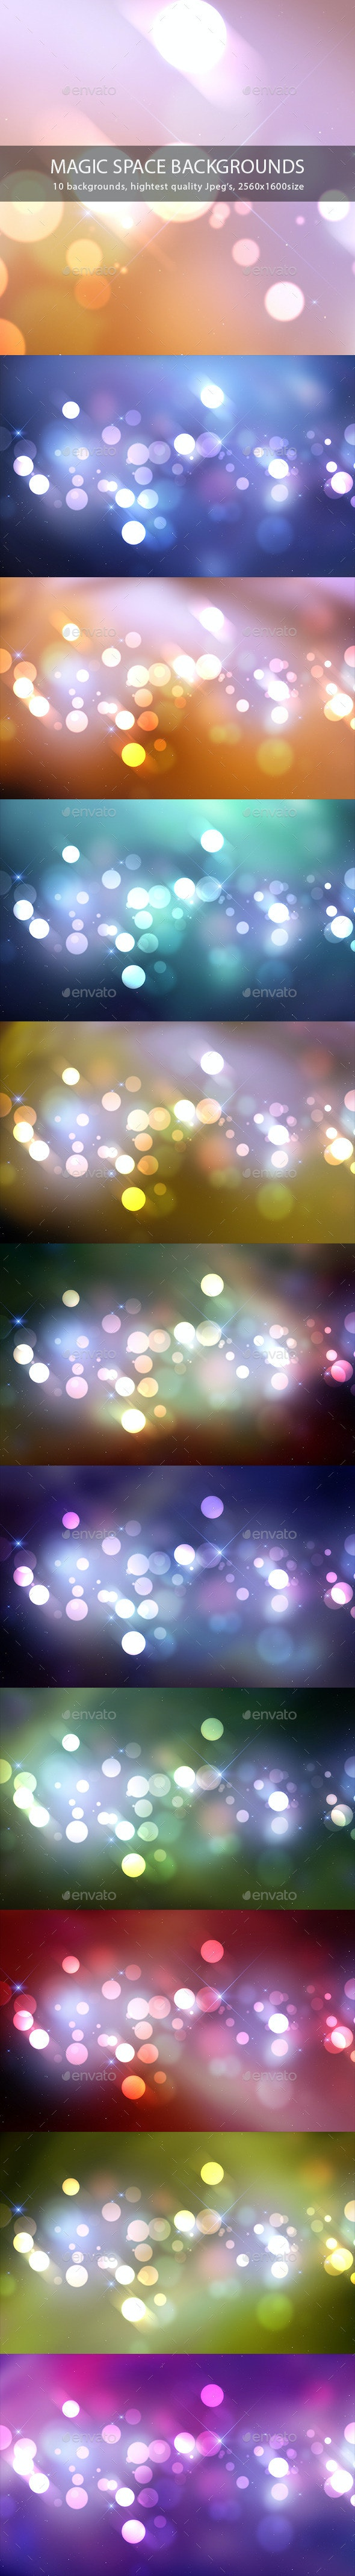 Magic Space Backgrounds - Abstract Backgrounds